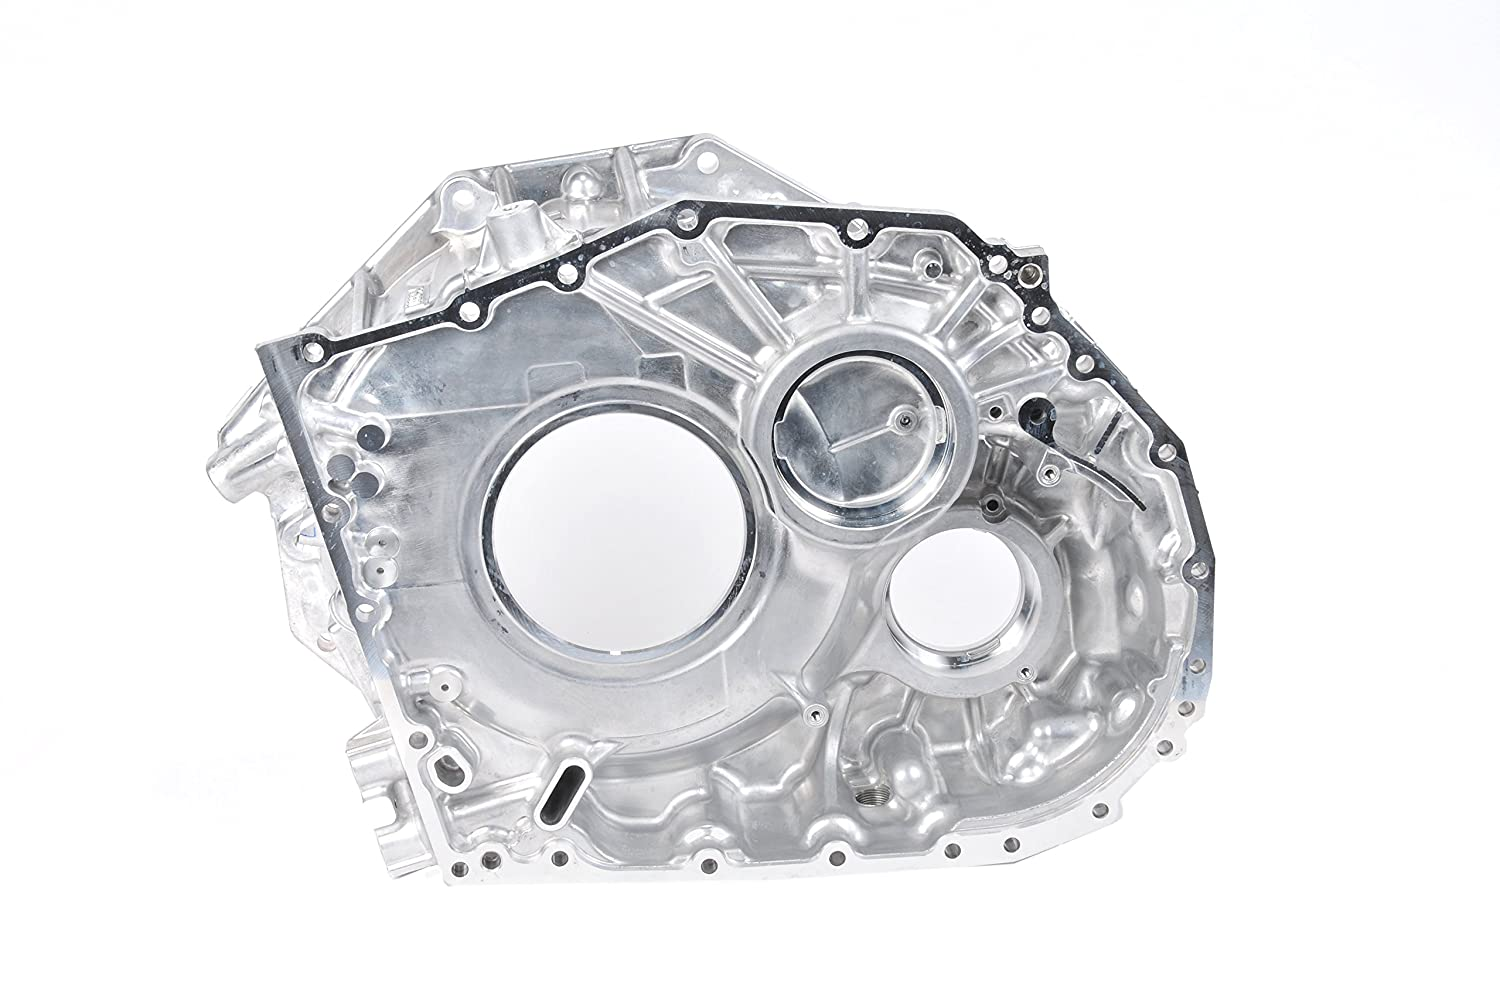 ACDelco 24276468 GM Original Equipment Automatic Transmission Torque Converter and Differential Housing